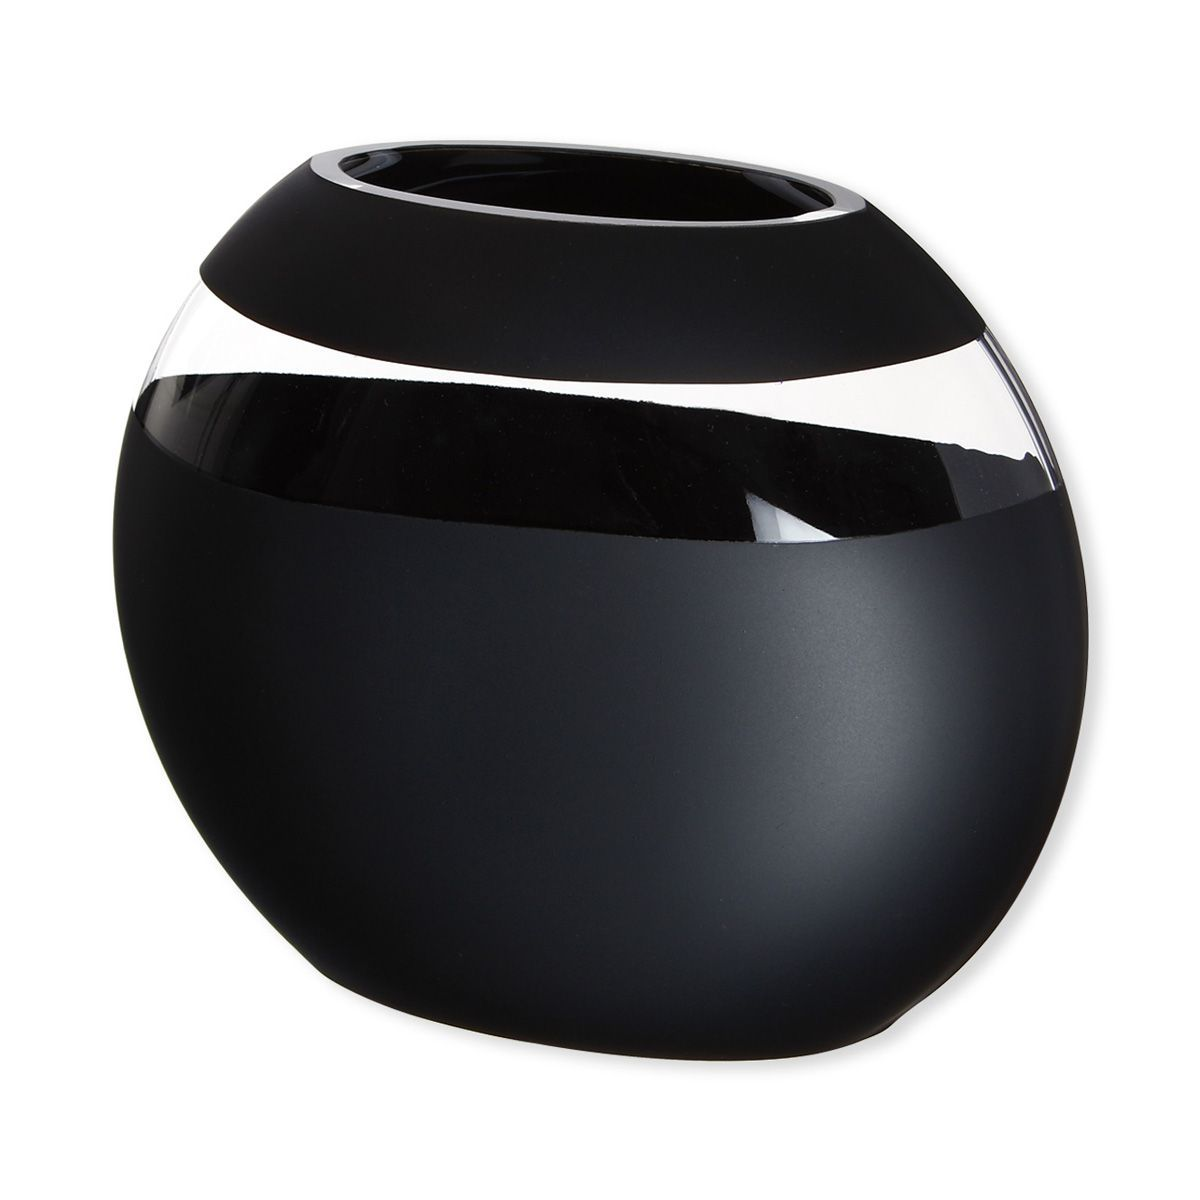 vase verre aur a noir cm bruno evrard cr ation. Black Bedroom Furniture Sets. Home Design Ideas